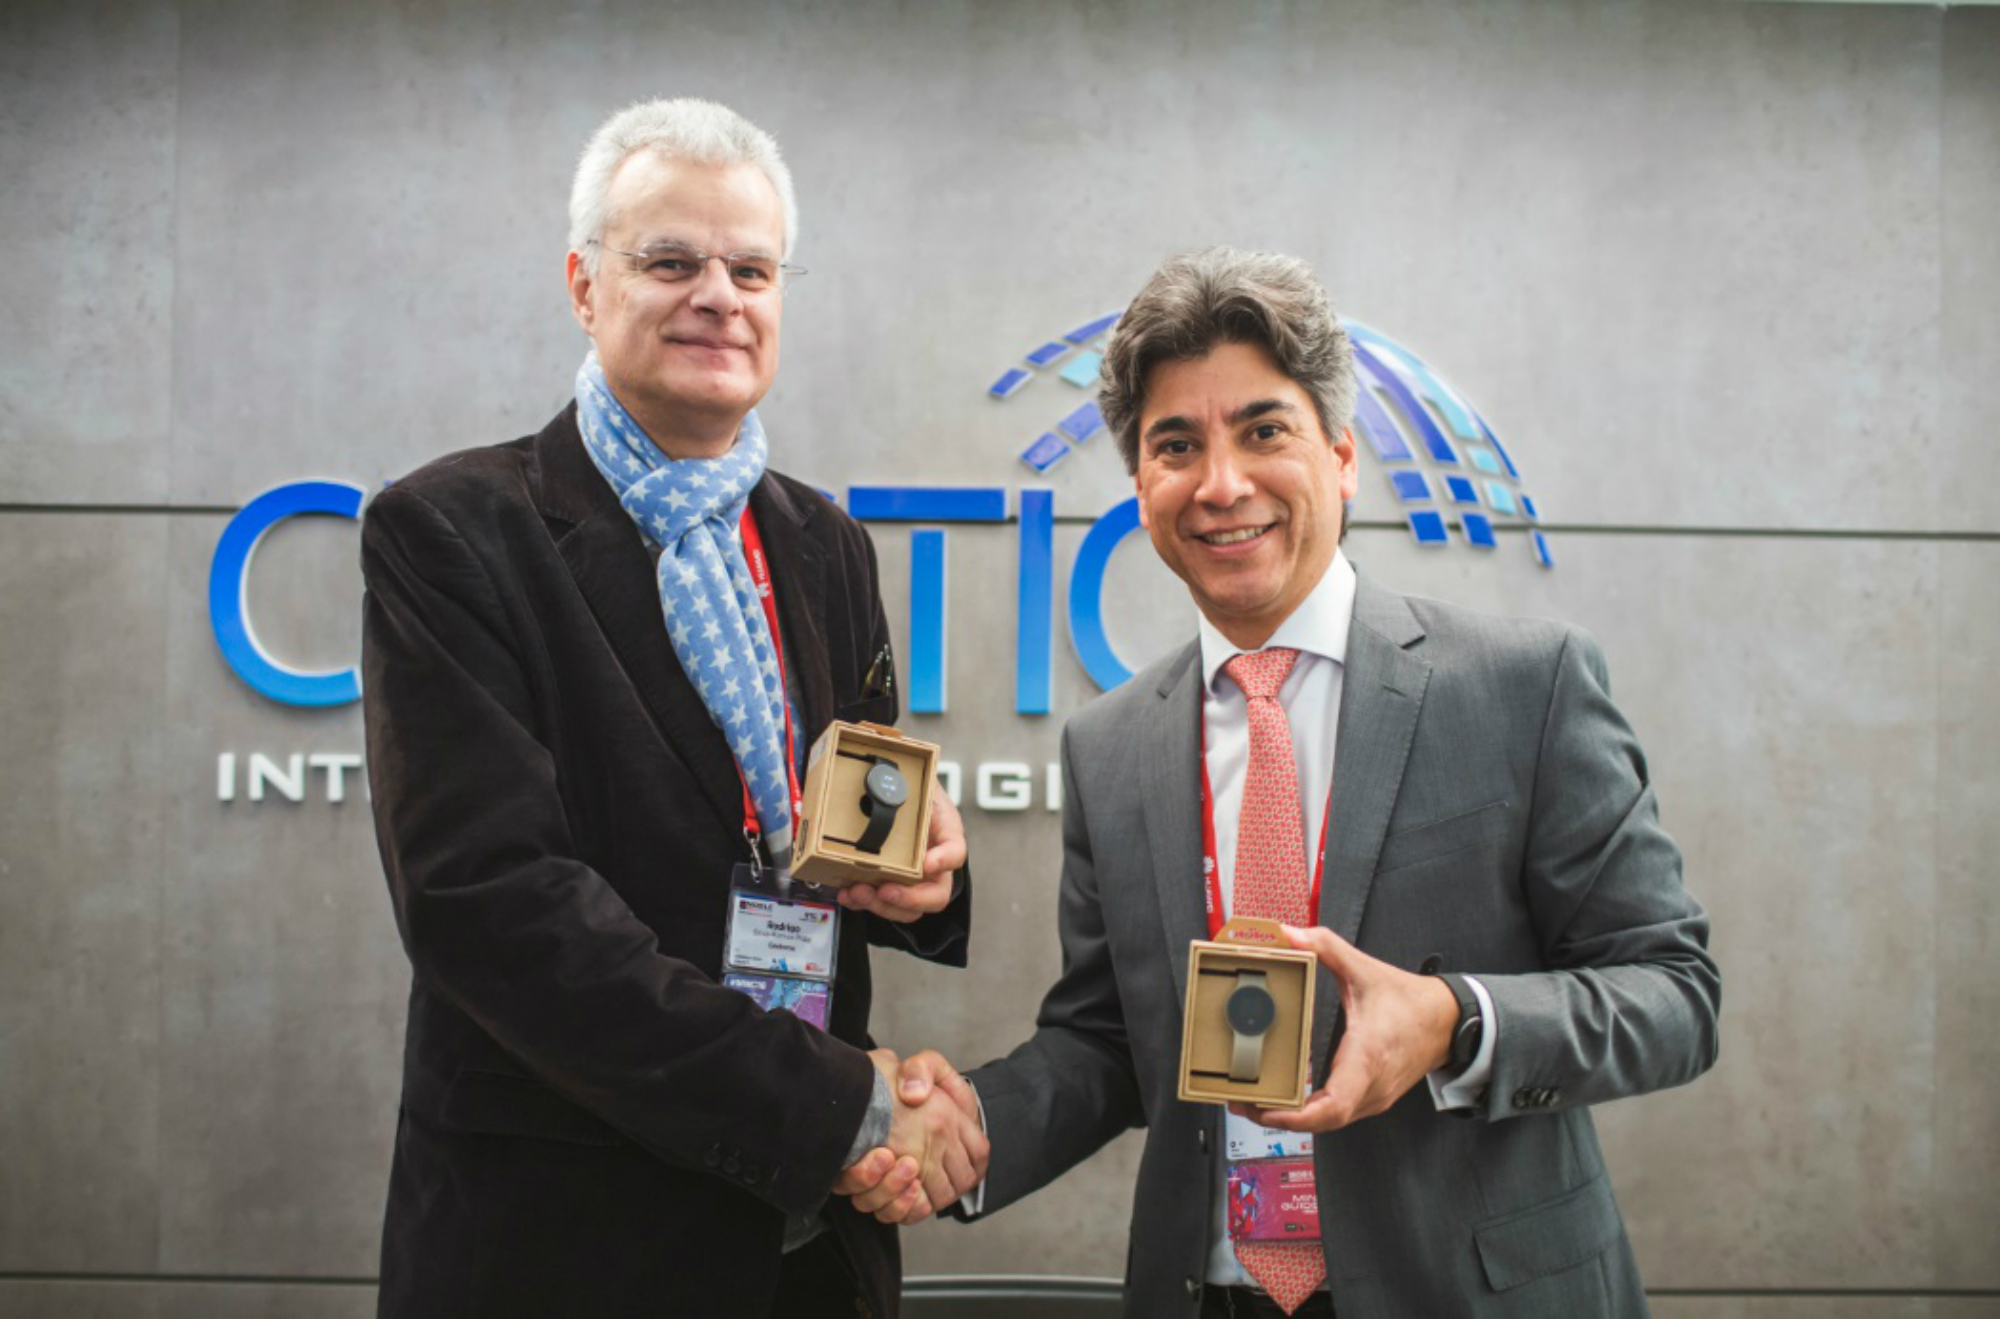 CELISTICS Rodrigo Silva Ramos_Chairman Geeksme junto a Antonio Belfort_Director General CELISTICS_alta